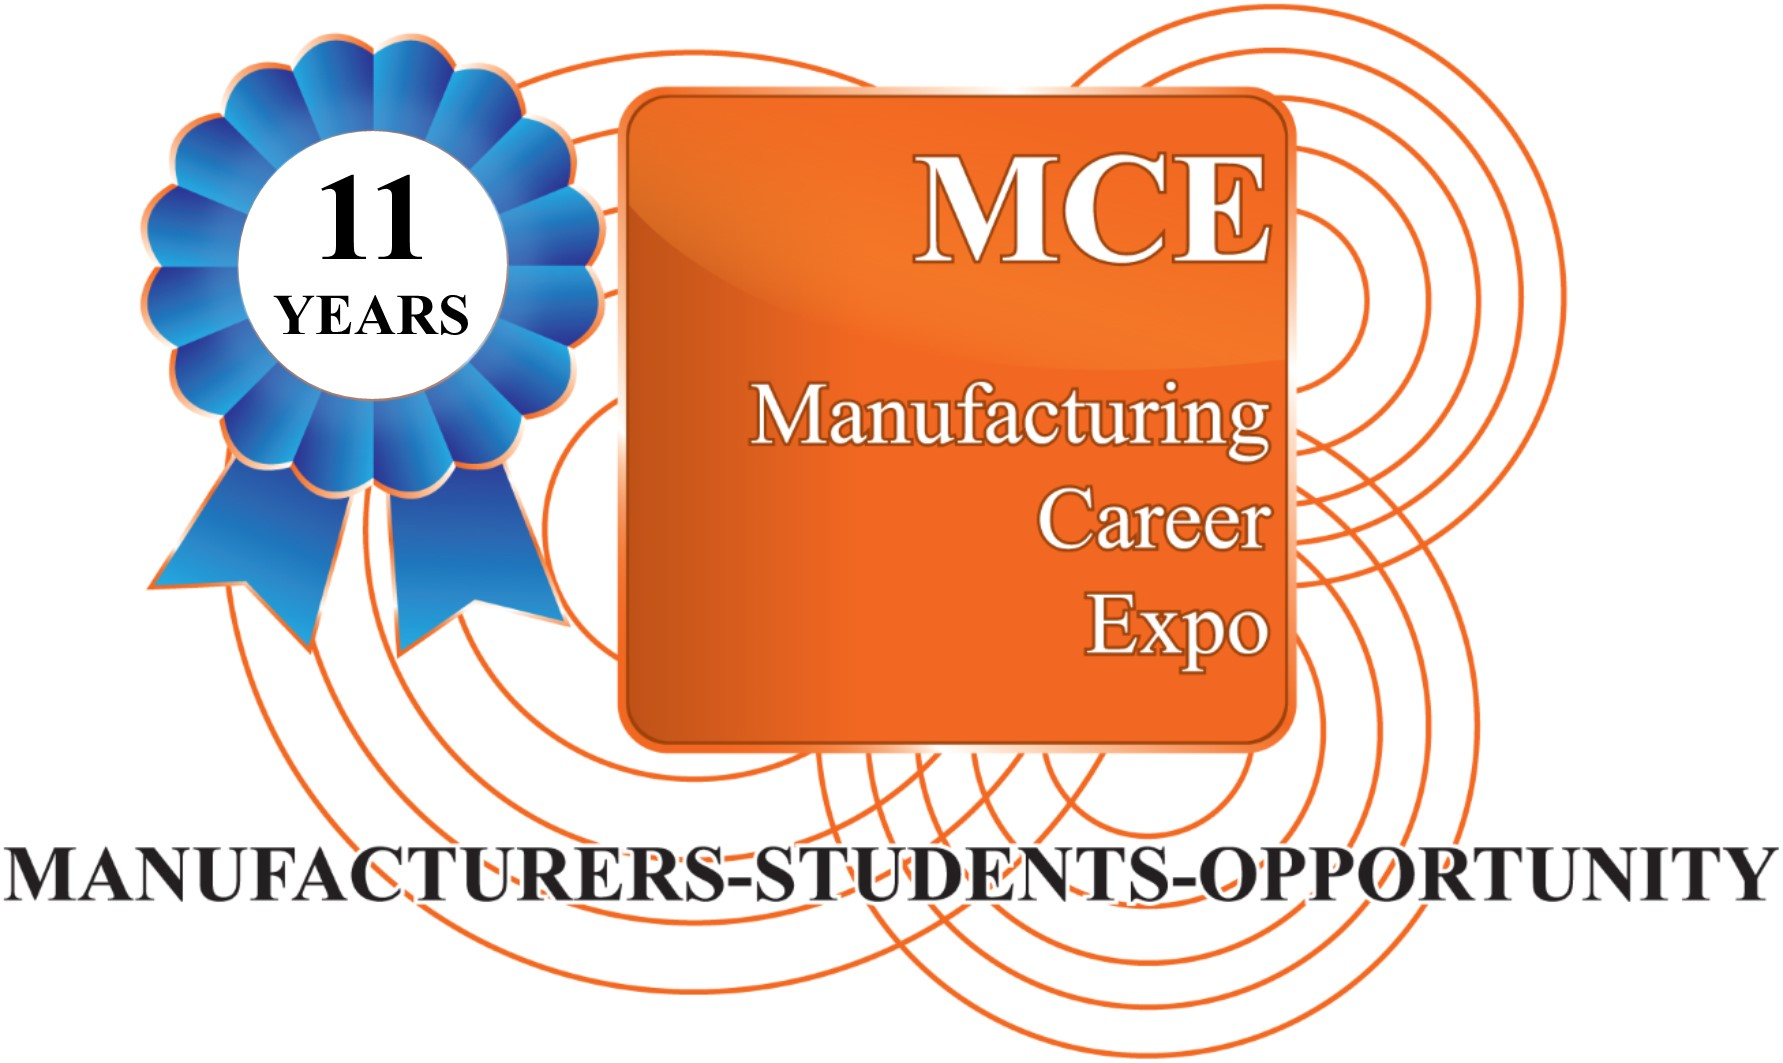 Click here to learn more about the MCE